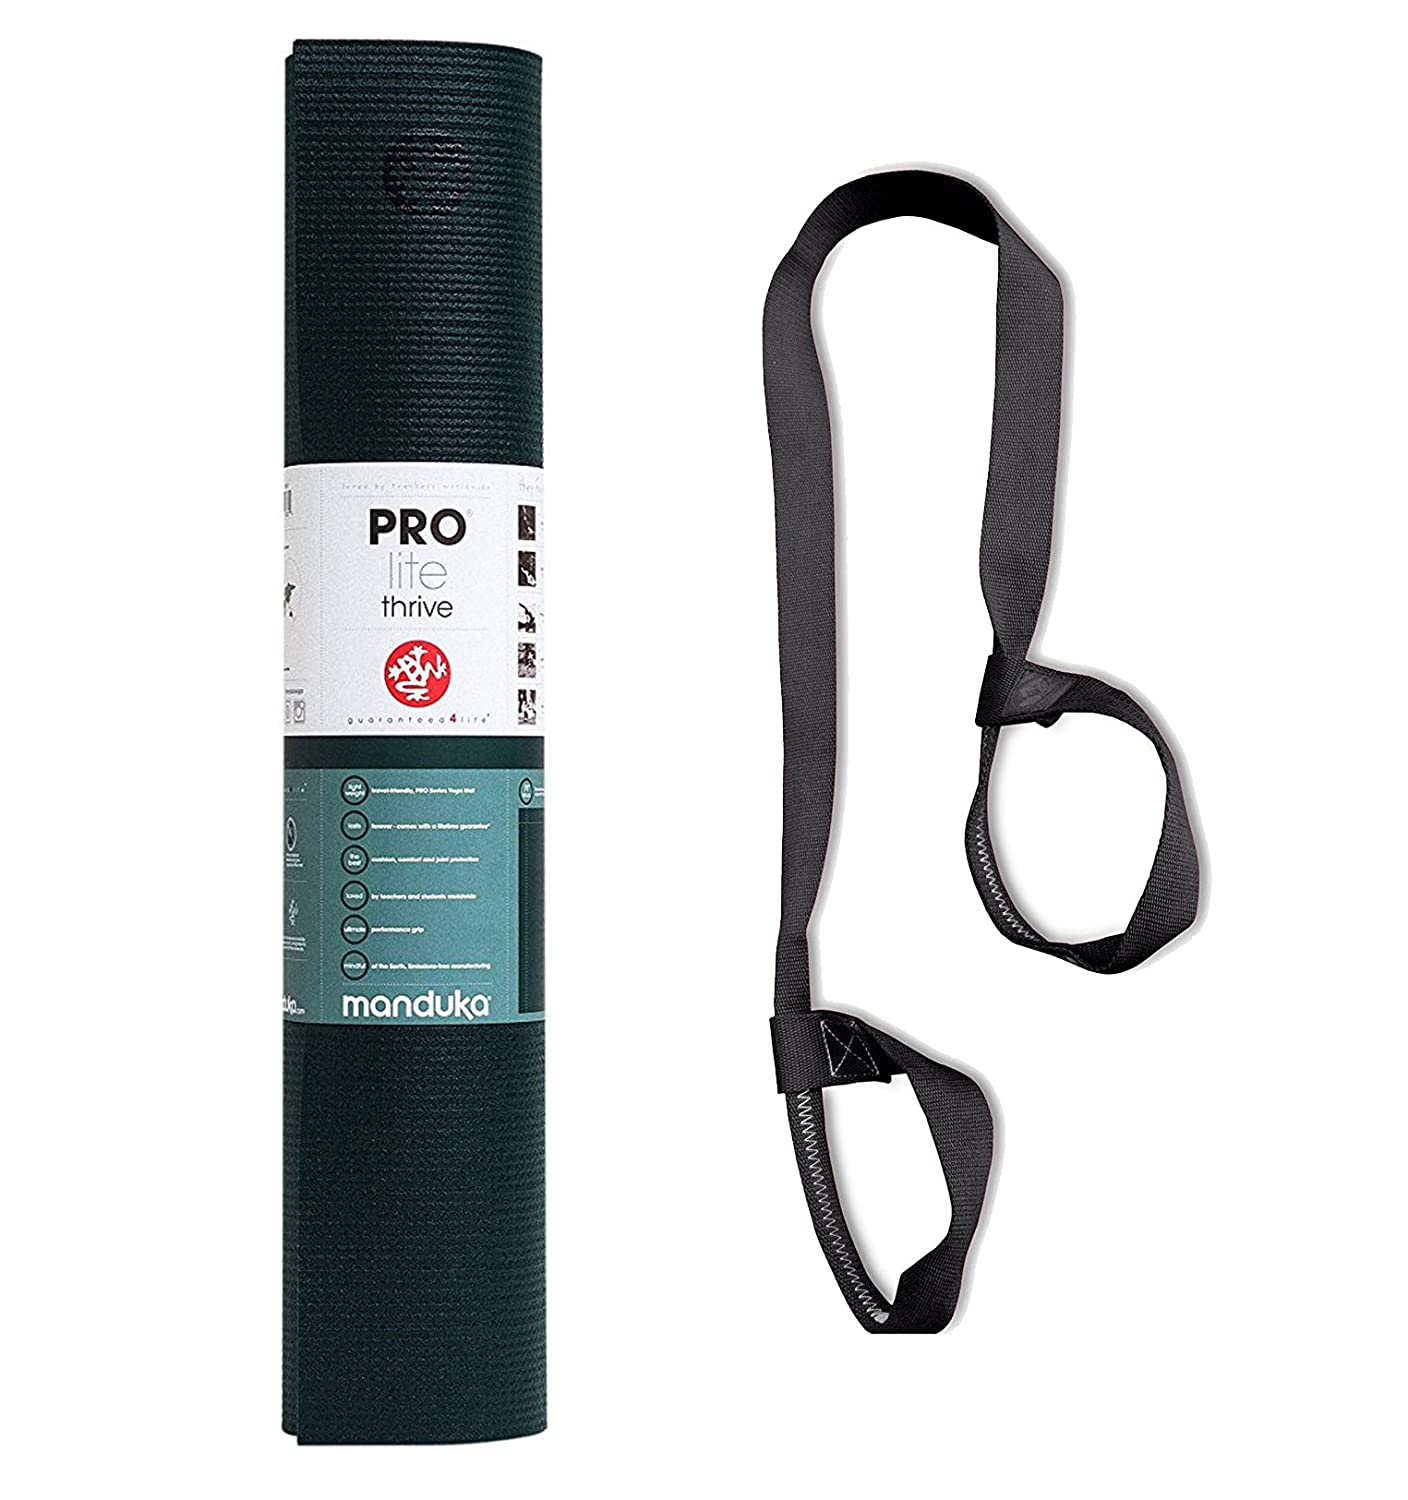 PlayBetter Manduka Prolite Yoga & Pilates Mat Bundle Adjustable Strap Carrier | 5mm Non-Slip Surfaces, Eco-Certified PVC & Polyester